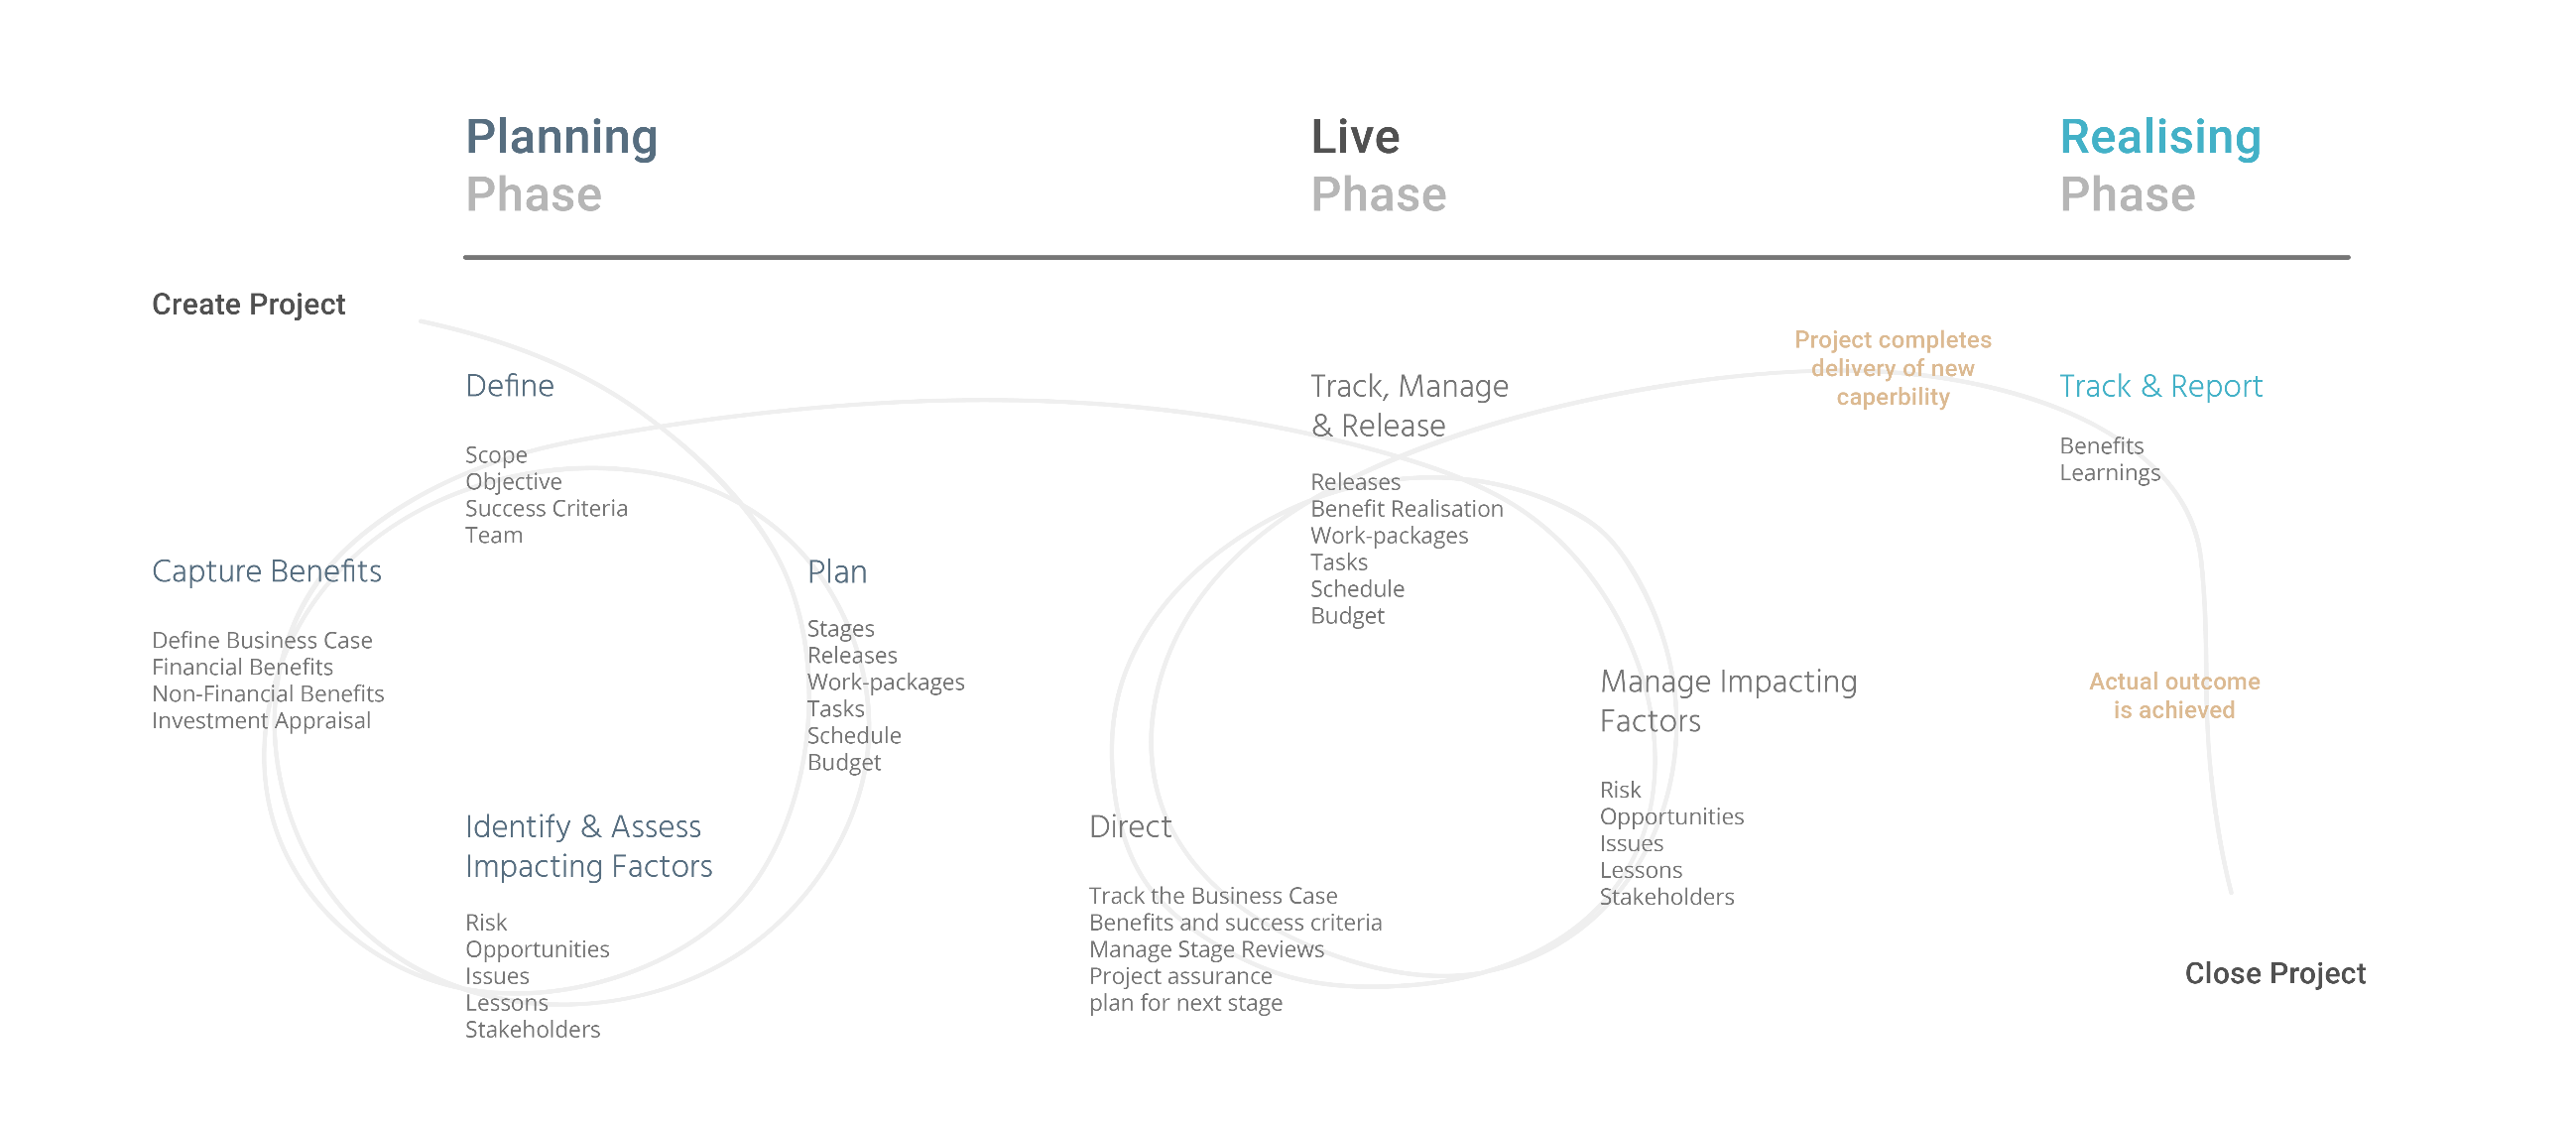 Project phases diagram